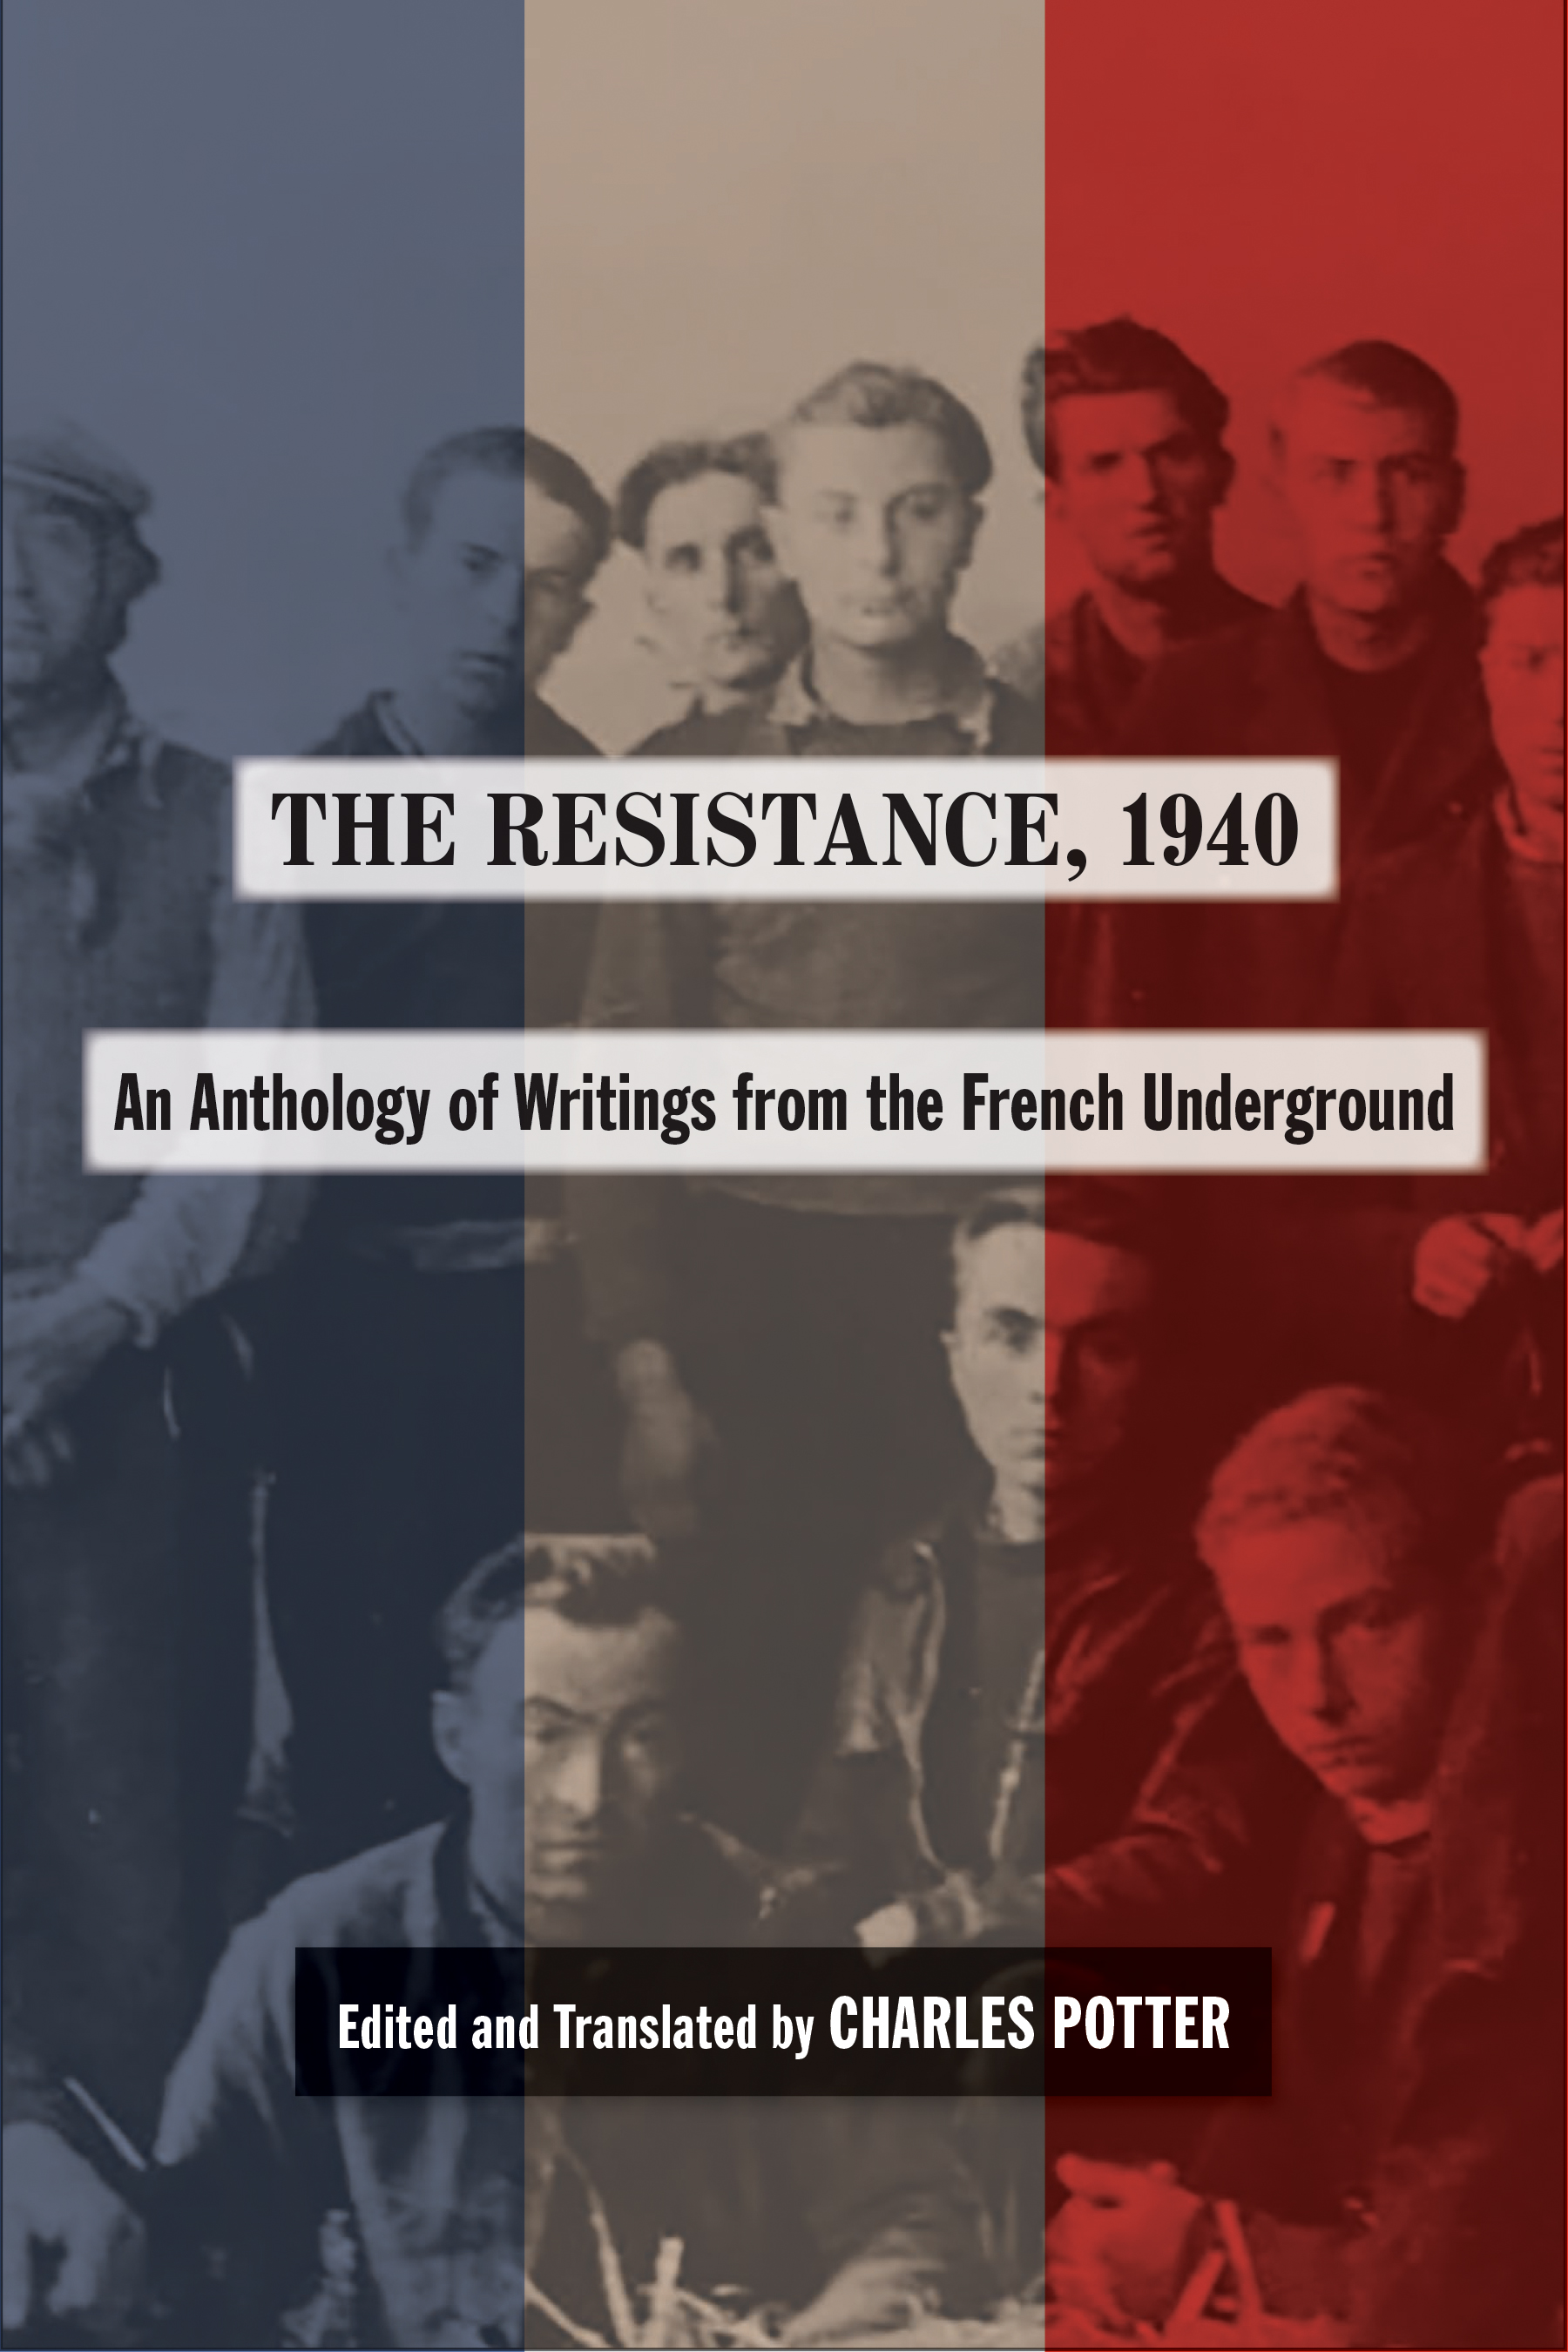 [The French Resistance]